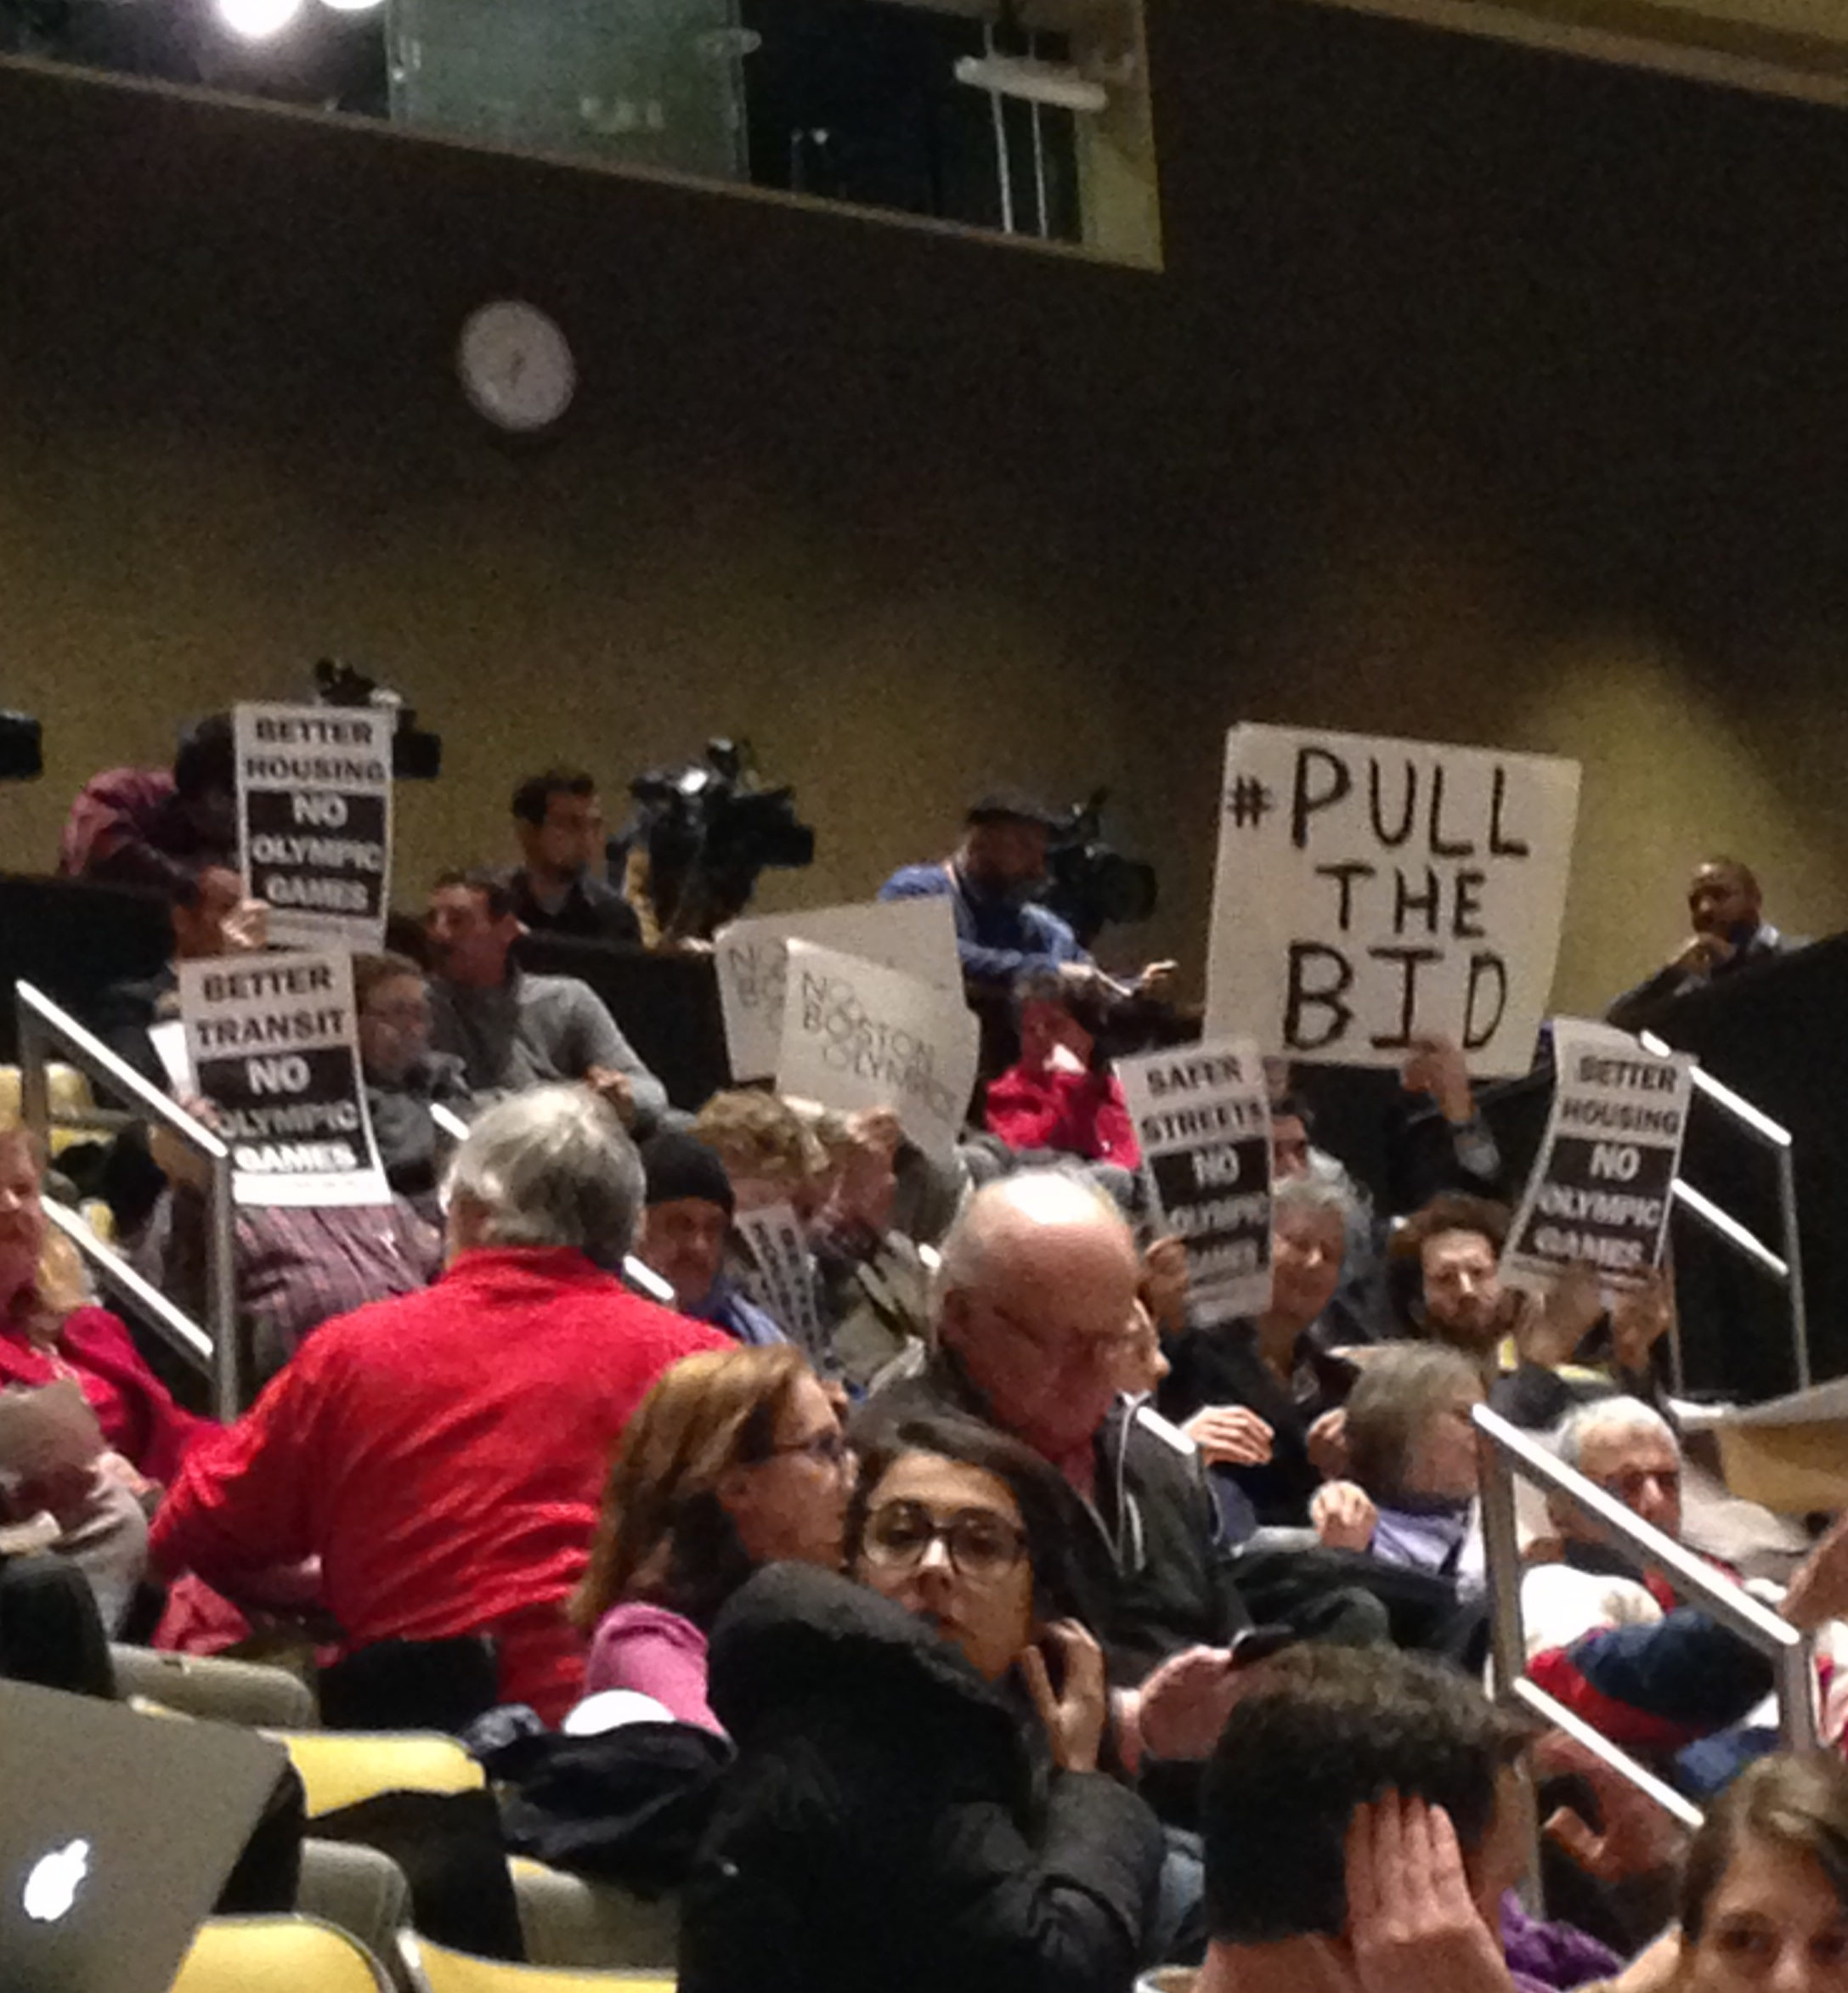 A protestor holds up a #PulltheBid sign at a Boston2024 community meeting